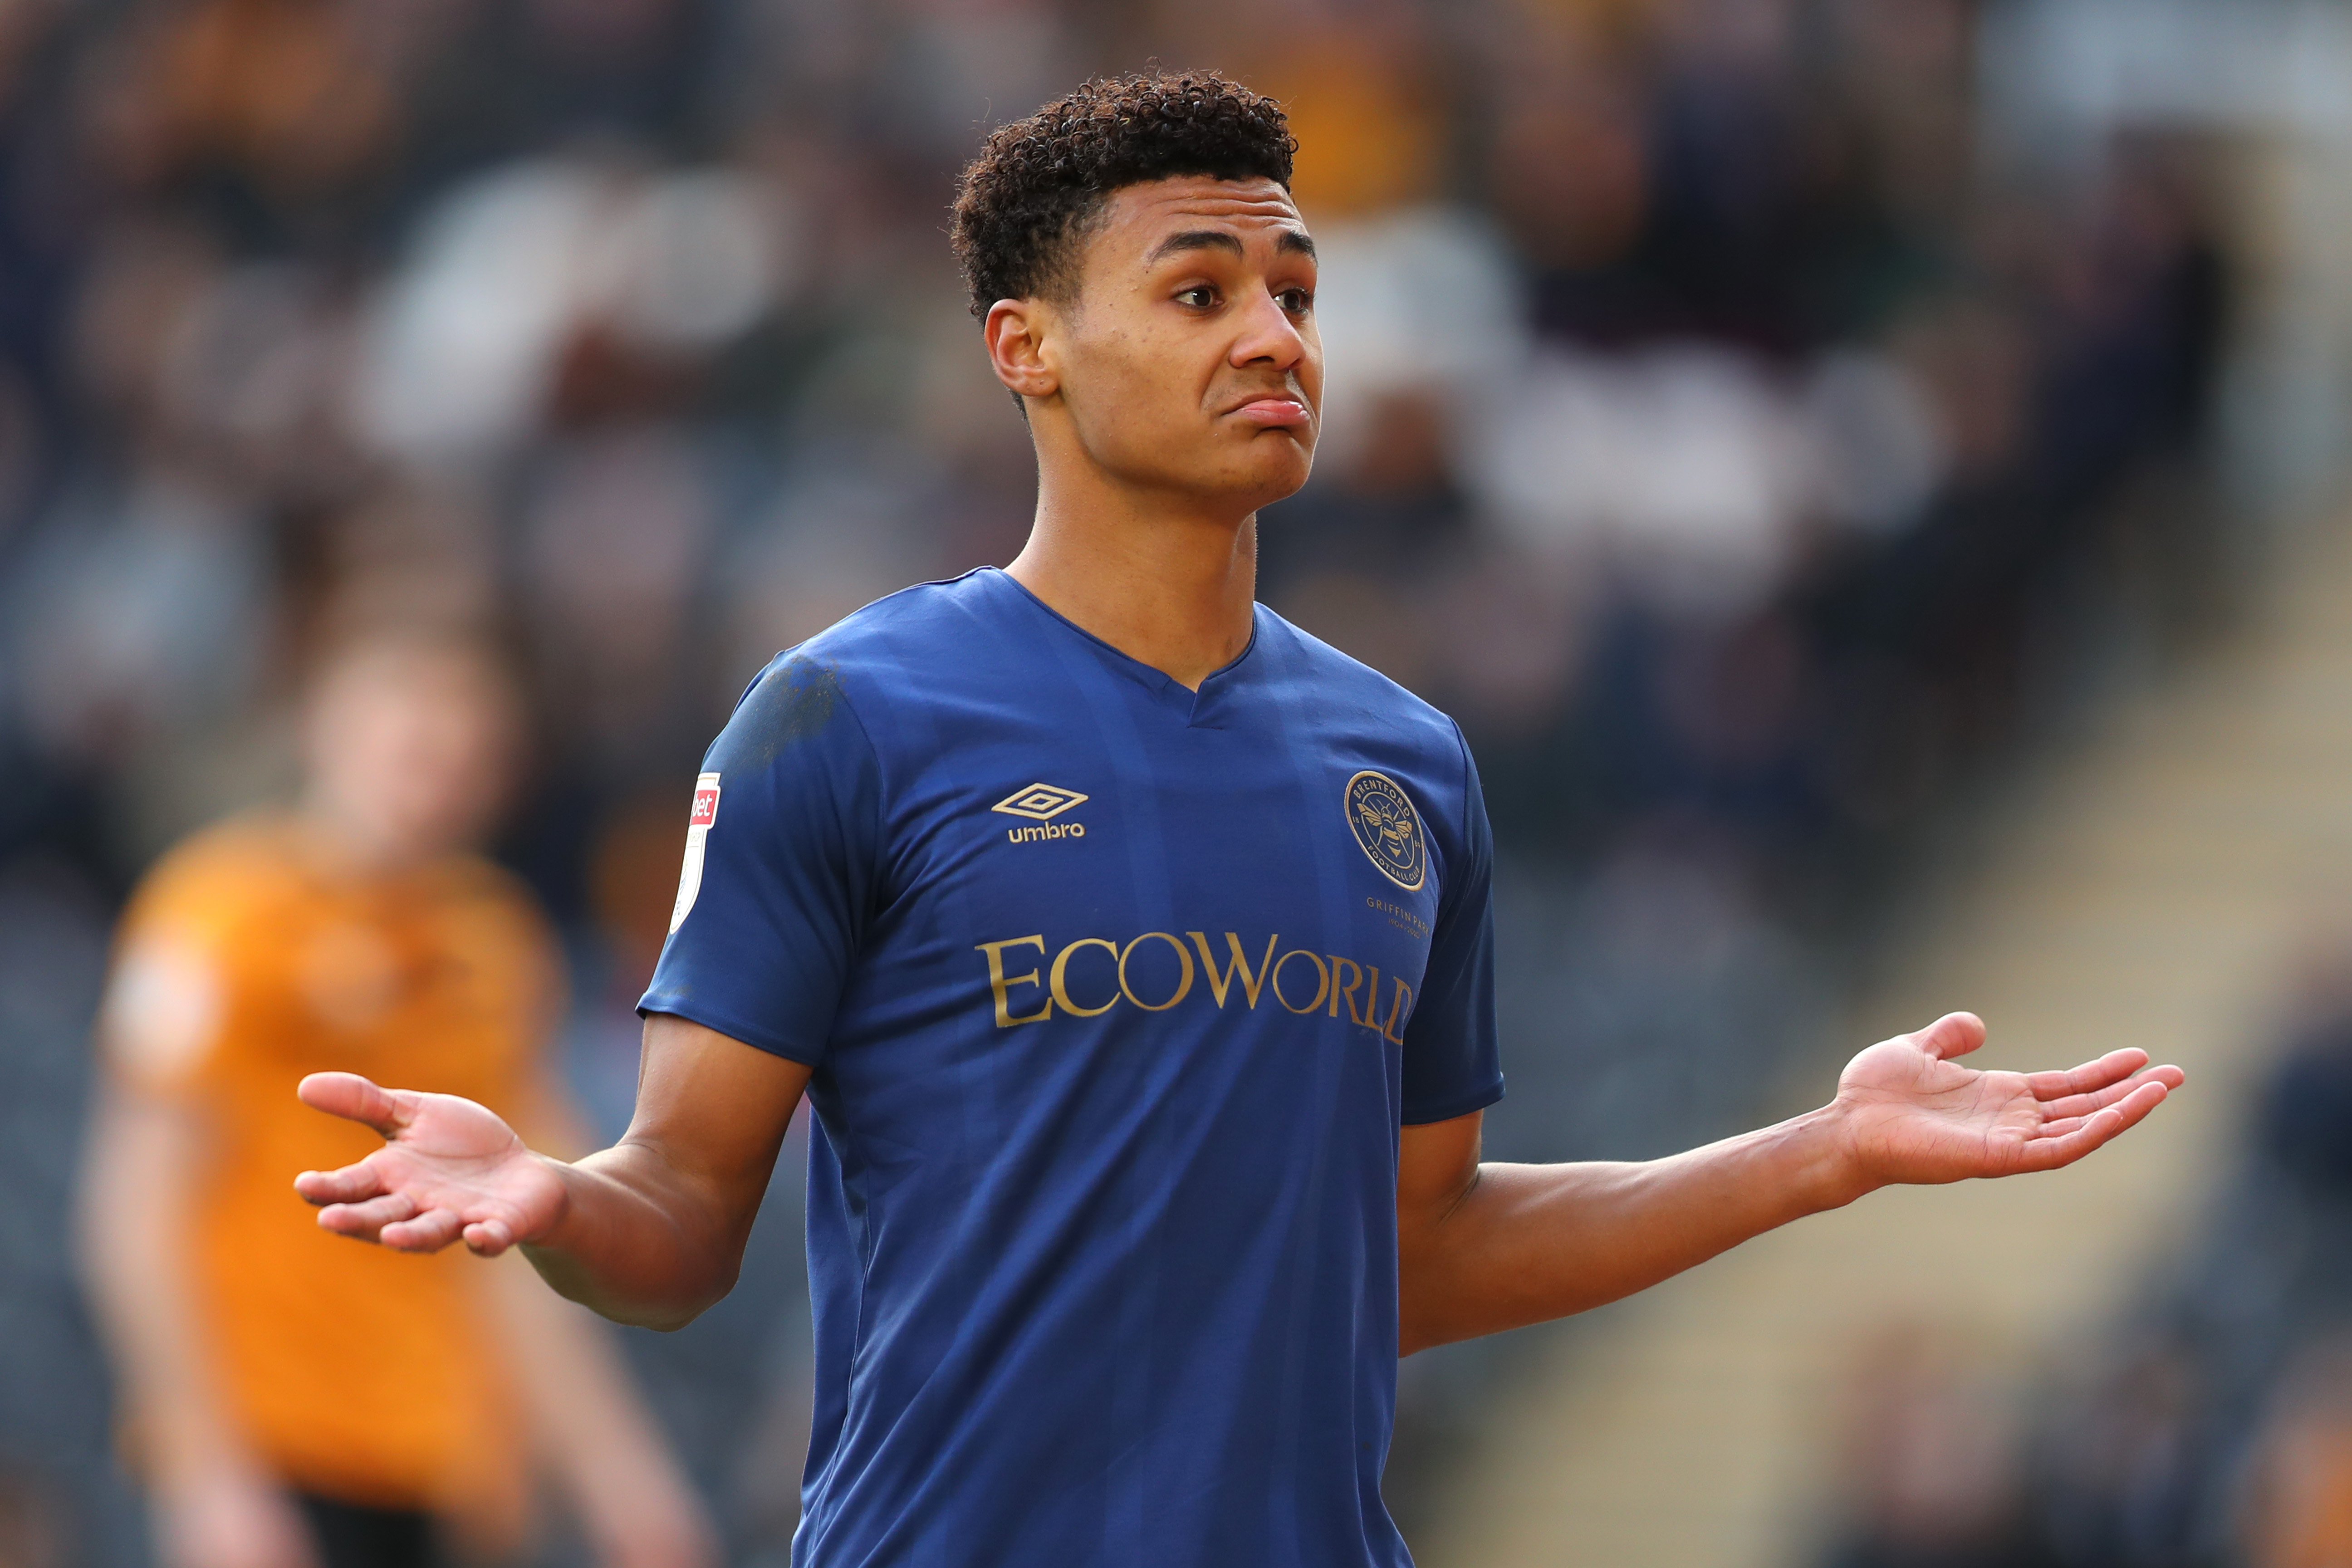 Leeds United are interested in Ollie Watkins - The answer to Leeds' problems.